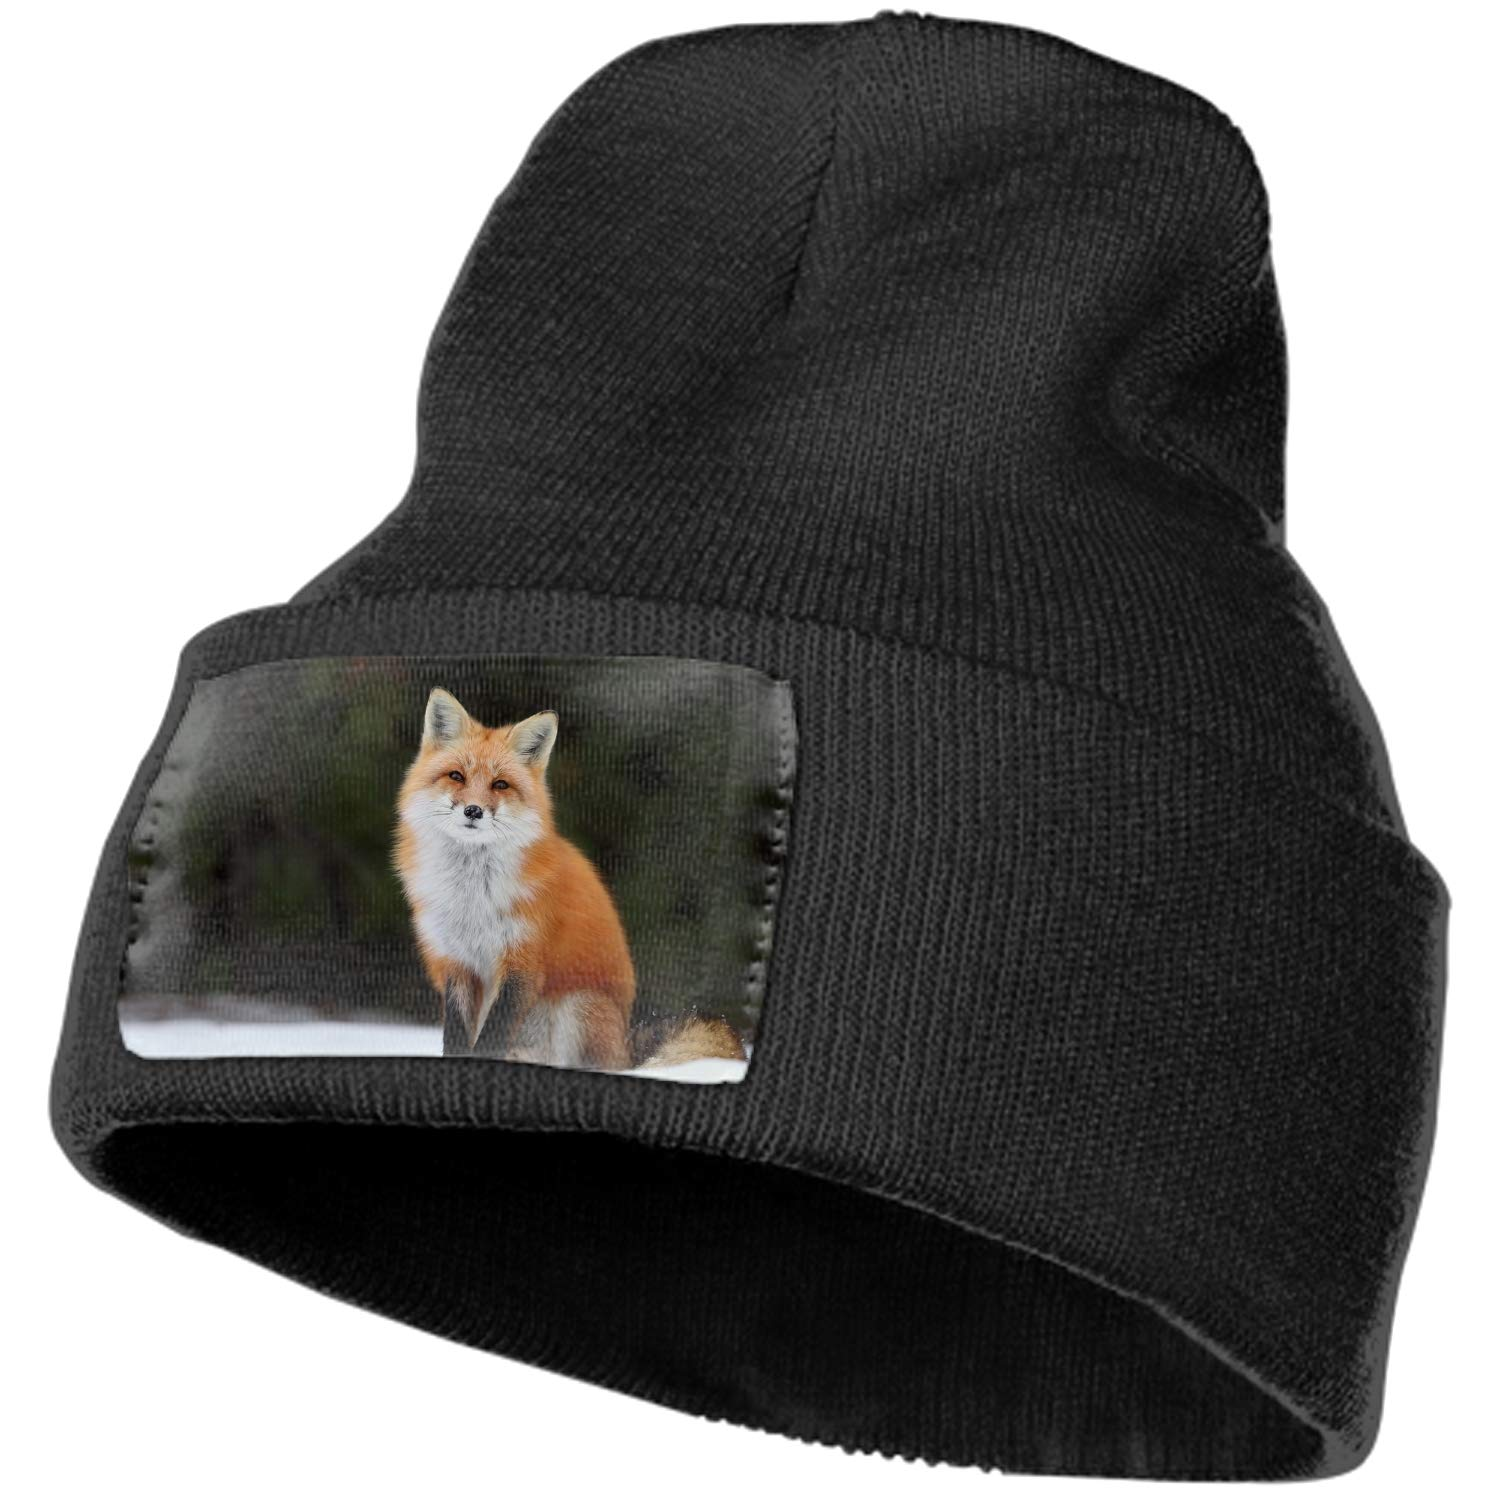 0653c5b11a2 Winter newsboy cable knitted visor beanie hat with fox in the snow hip hop  hats at